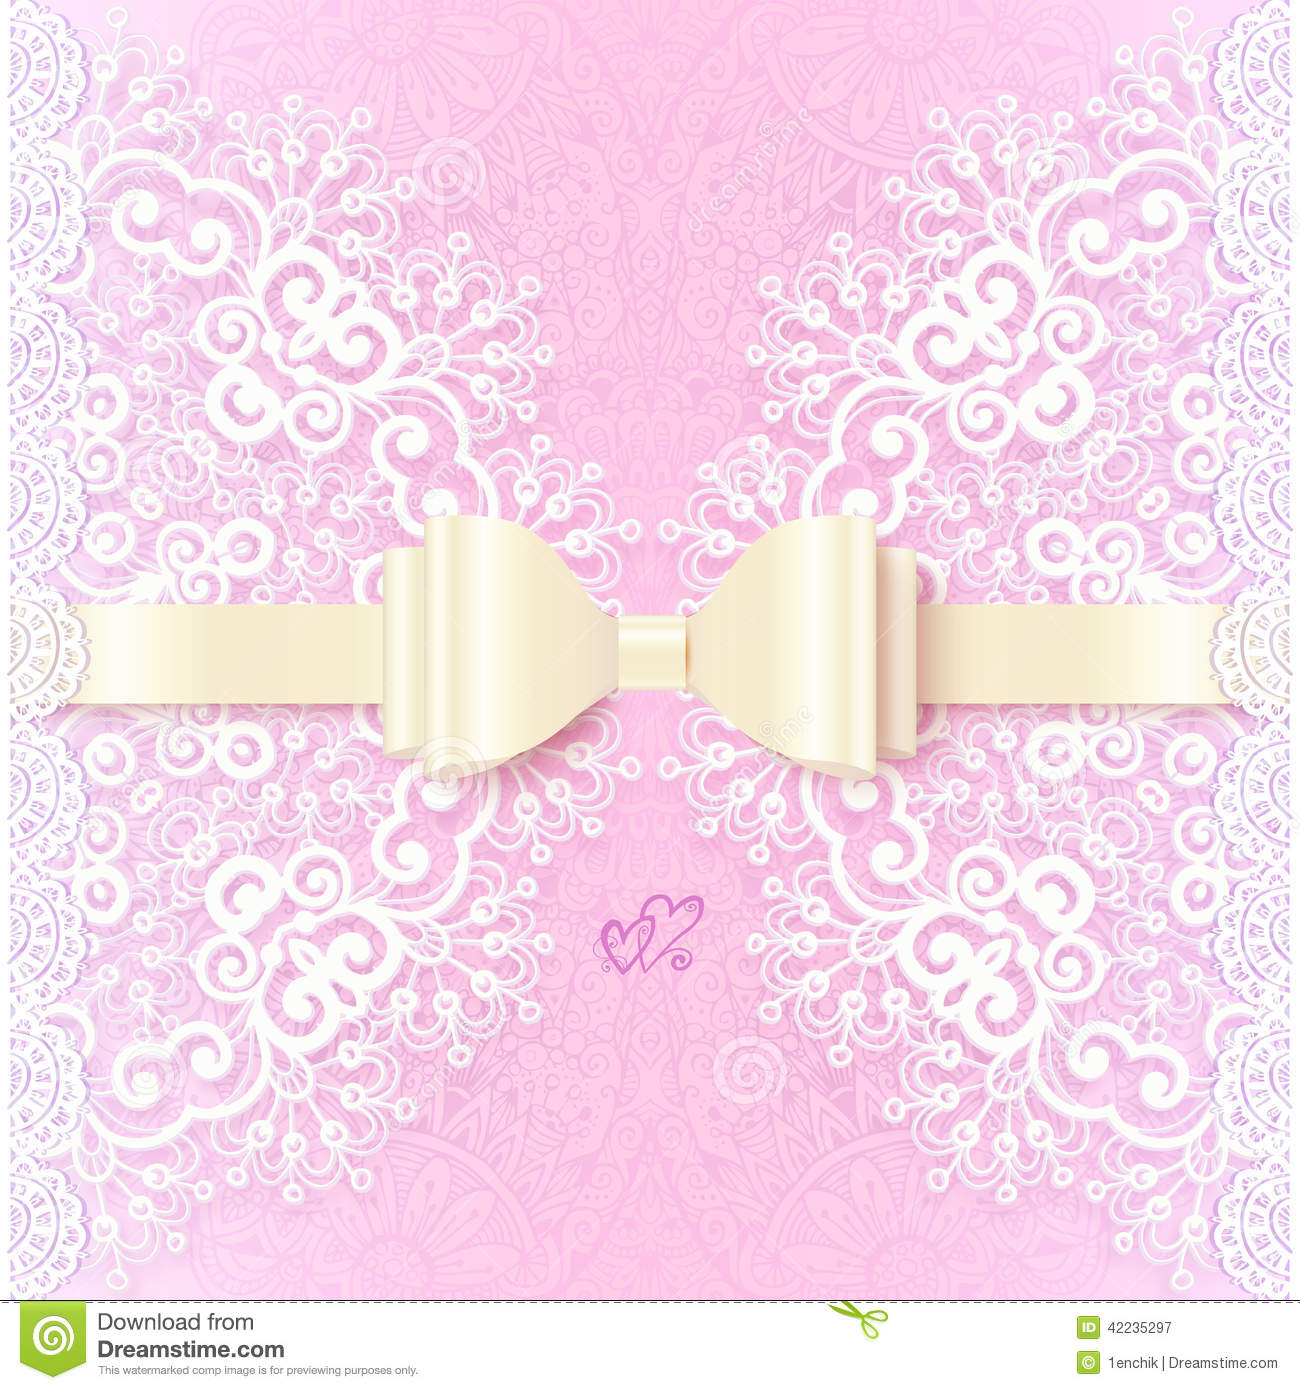 Vintage Wedding Card Template With White Bow Stock Vector - Image ...